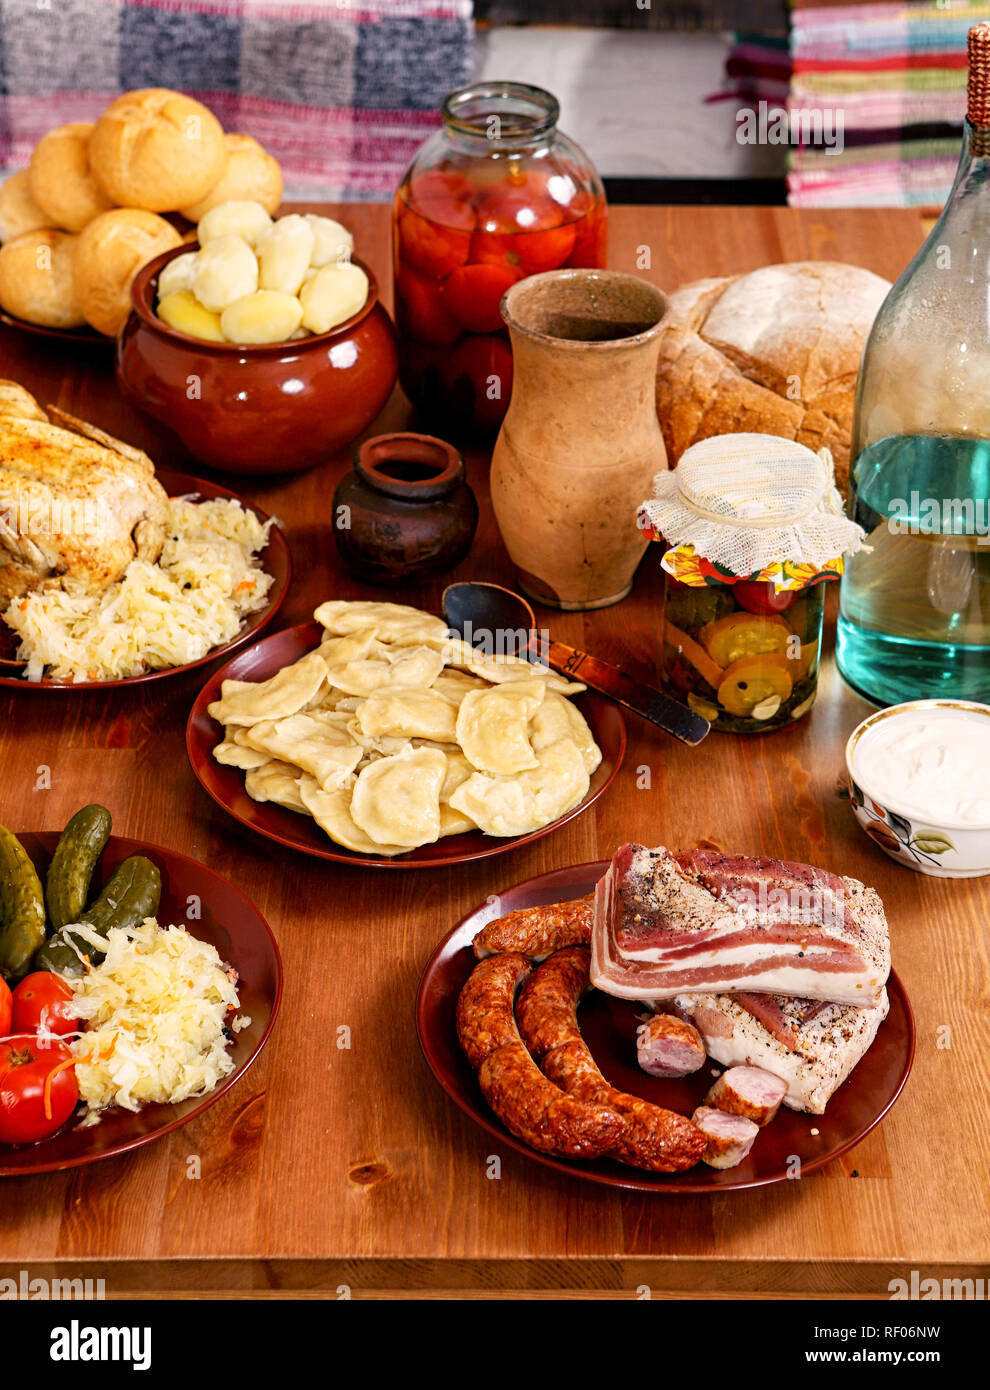 Fat, dumplings, canned tomatoes, cucumbers and cabbage, moonshine and boiled potatoes on the table - Stock Image